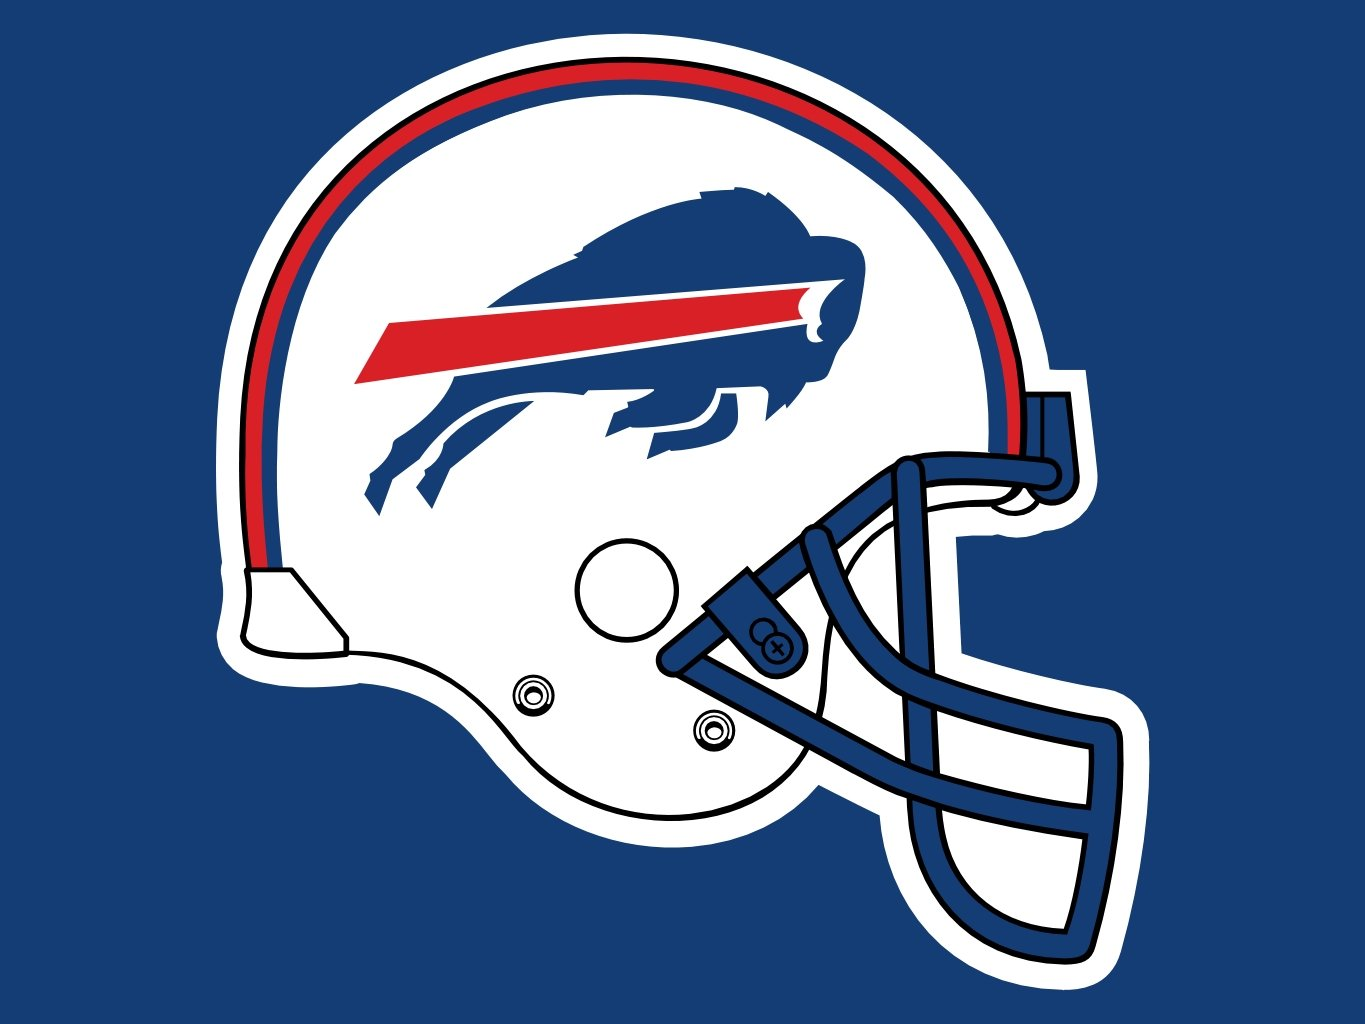 Buffalo Bills videos images and buzz 1365x1024